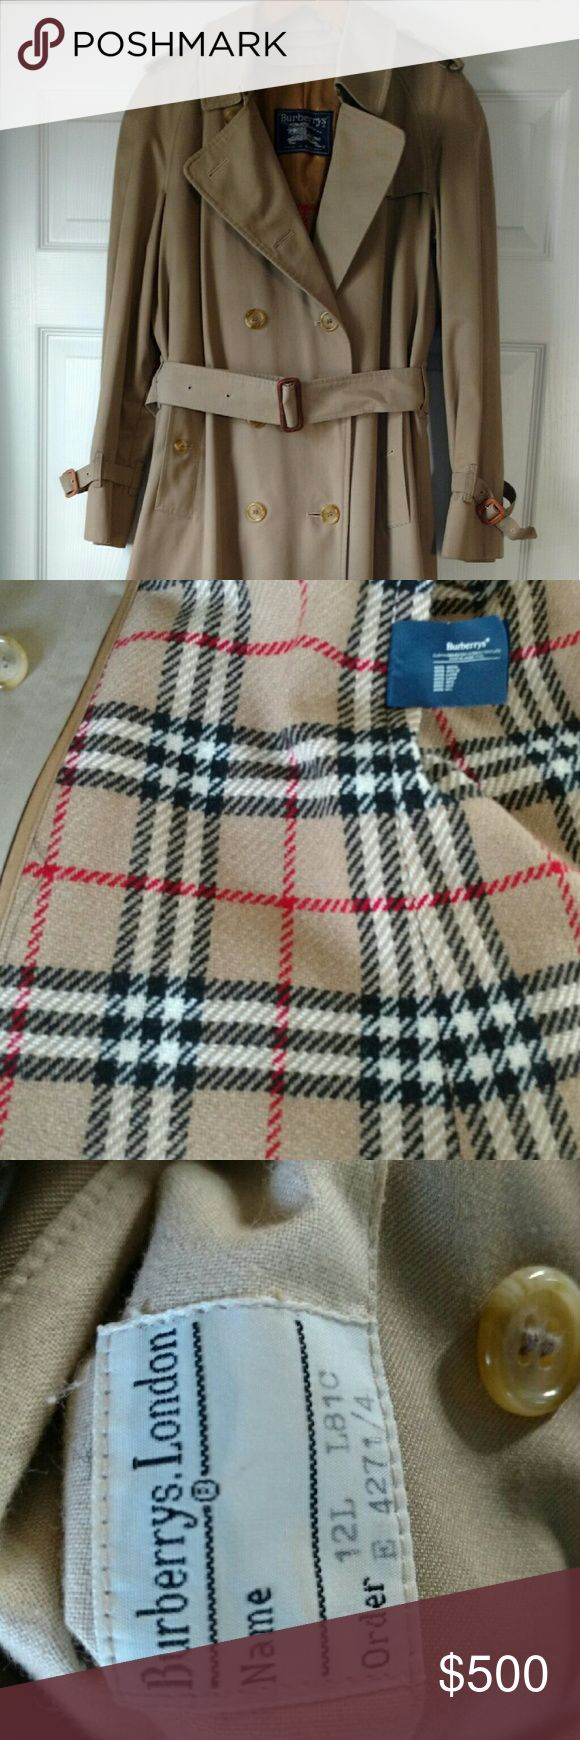 VINTAGE BURBERRY TRENCH COAT Mint condition double breasted khaki trench coat. Comes with zip out lining, epaulettes on shoulders, cuff straps and belt. Burberry Jackets & Coats Trench Coats